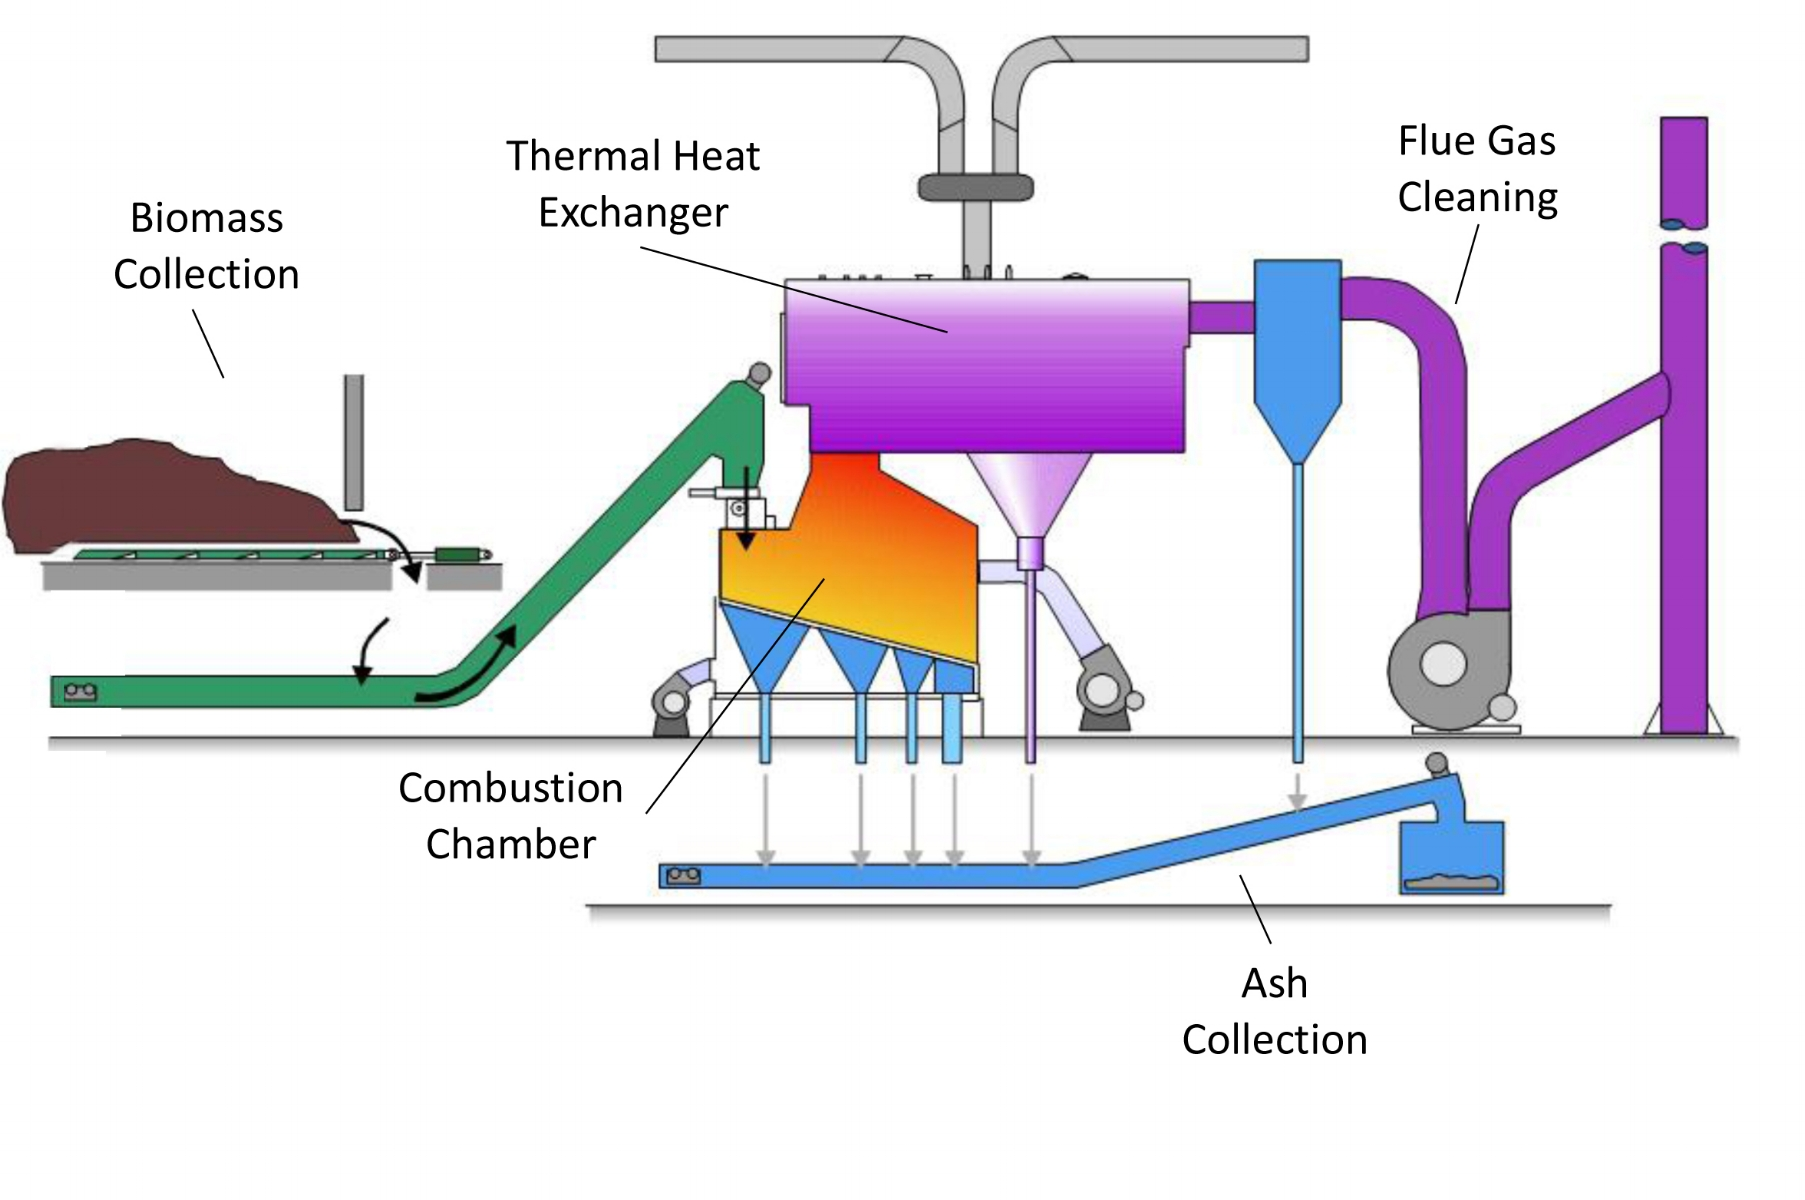 Step Grate Boiler Configuration : (Drawing courtesy of KMW Energy Canada)